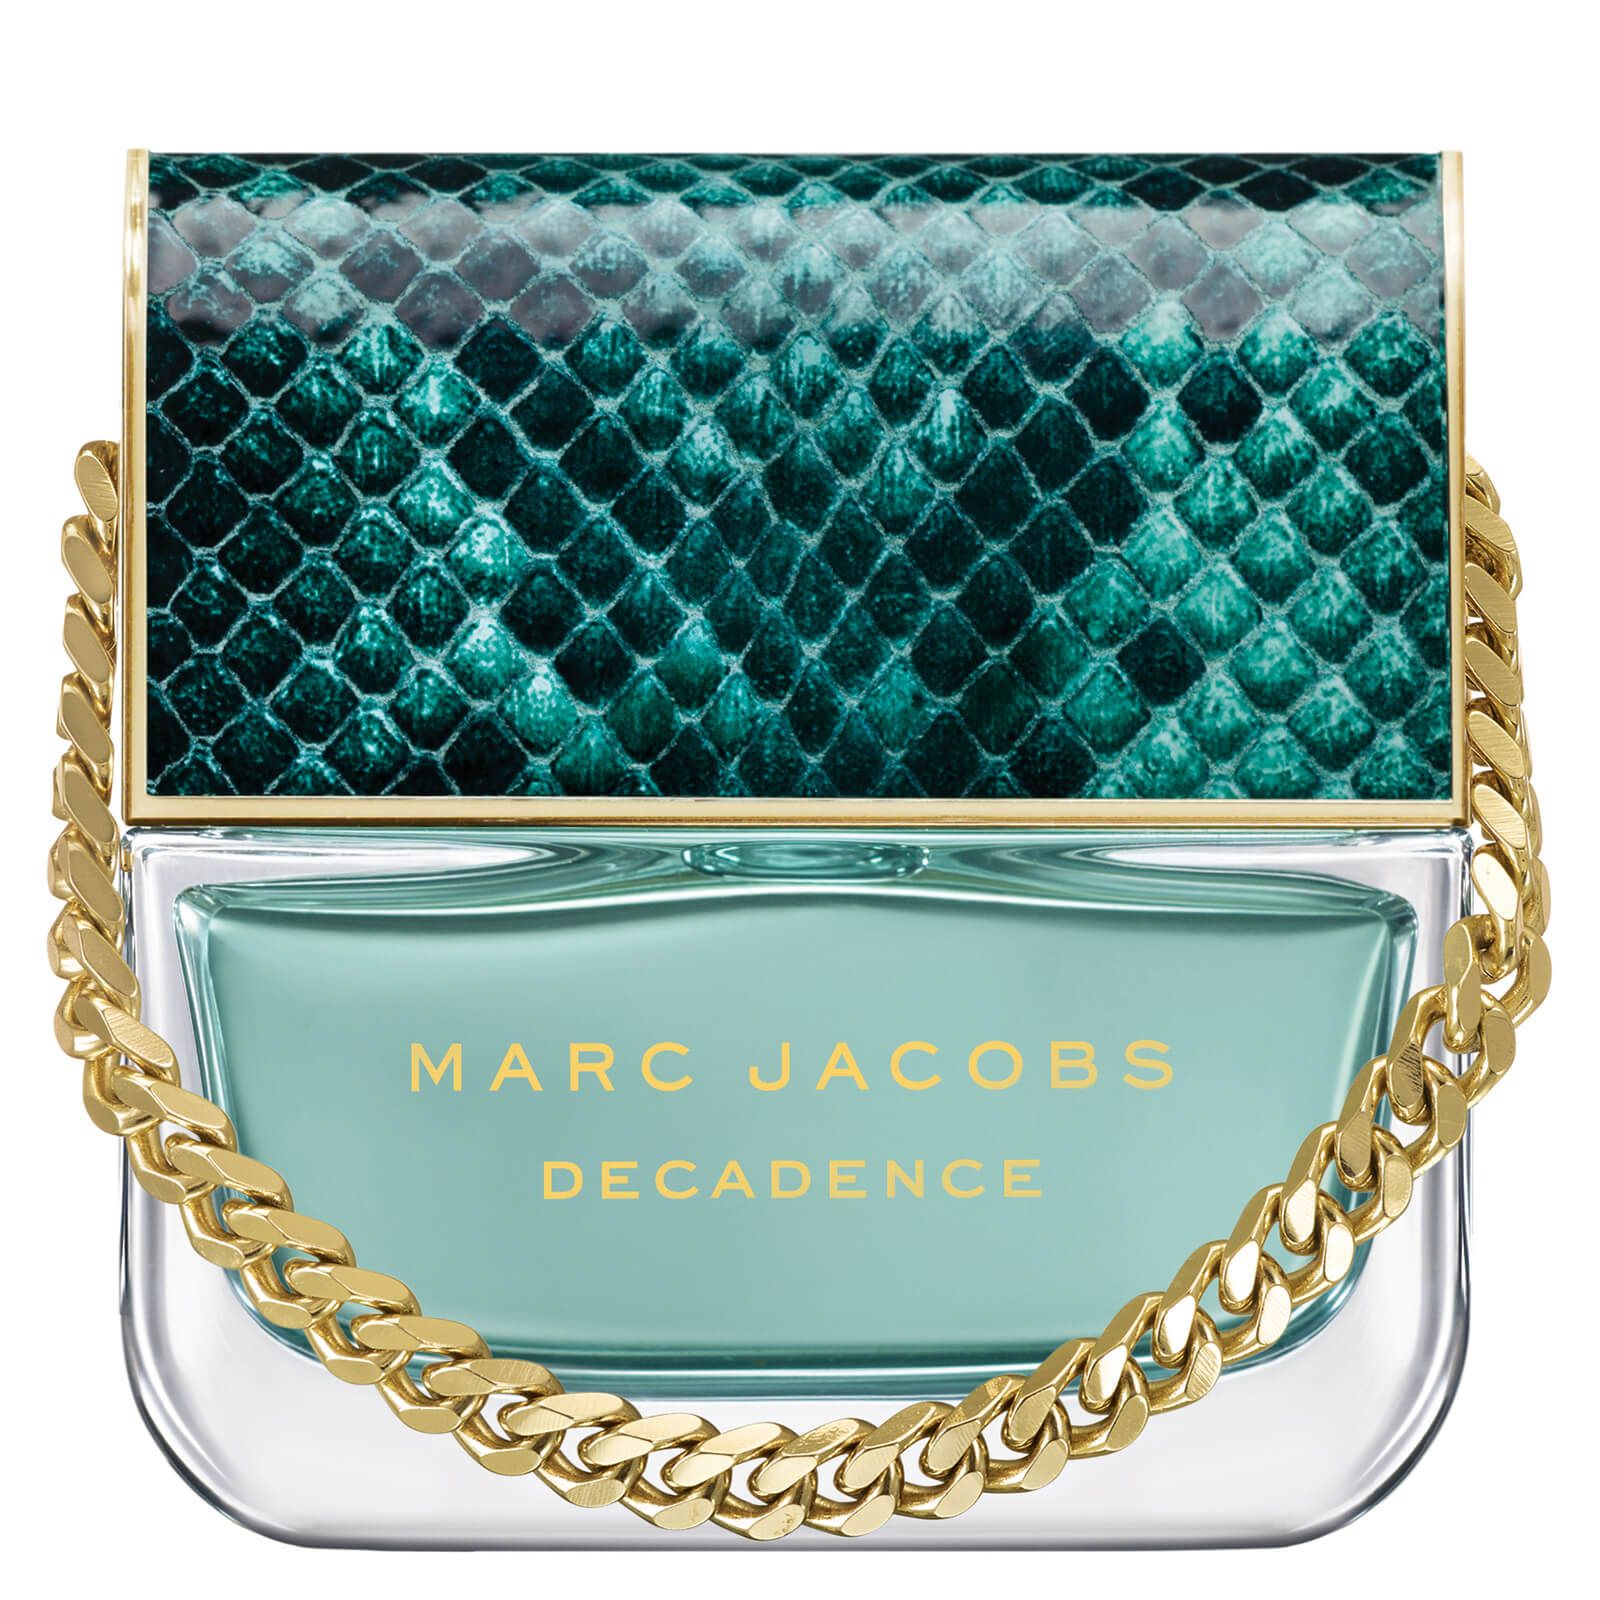 Decadence Marc Jacobs Perfume